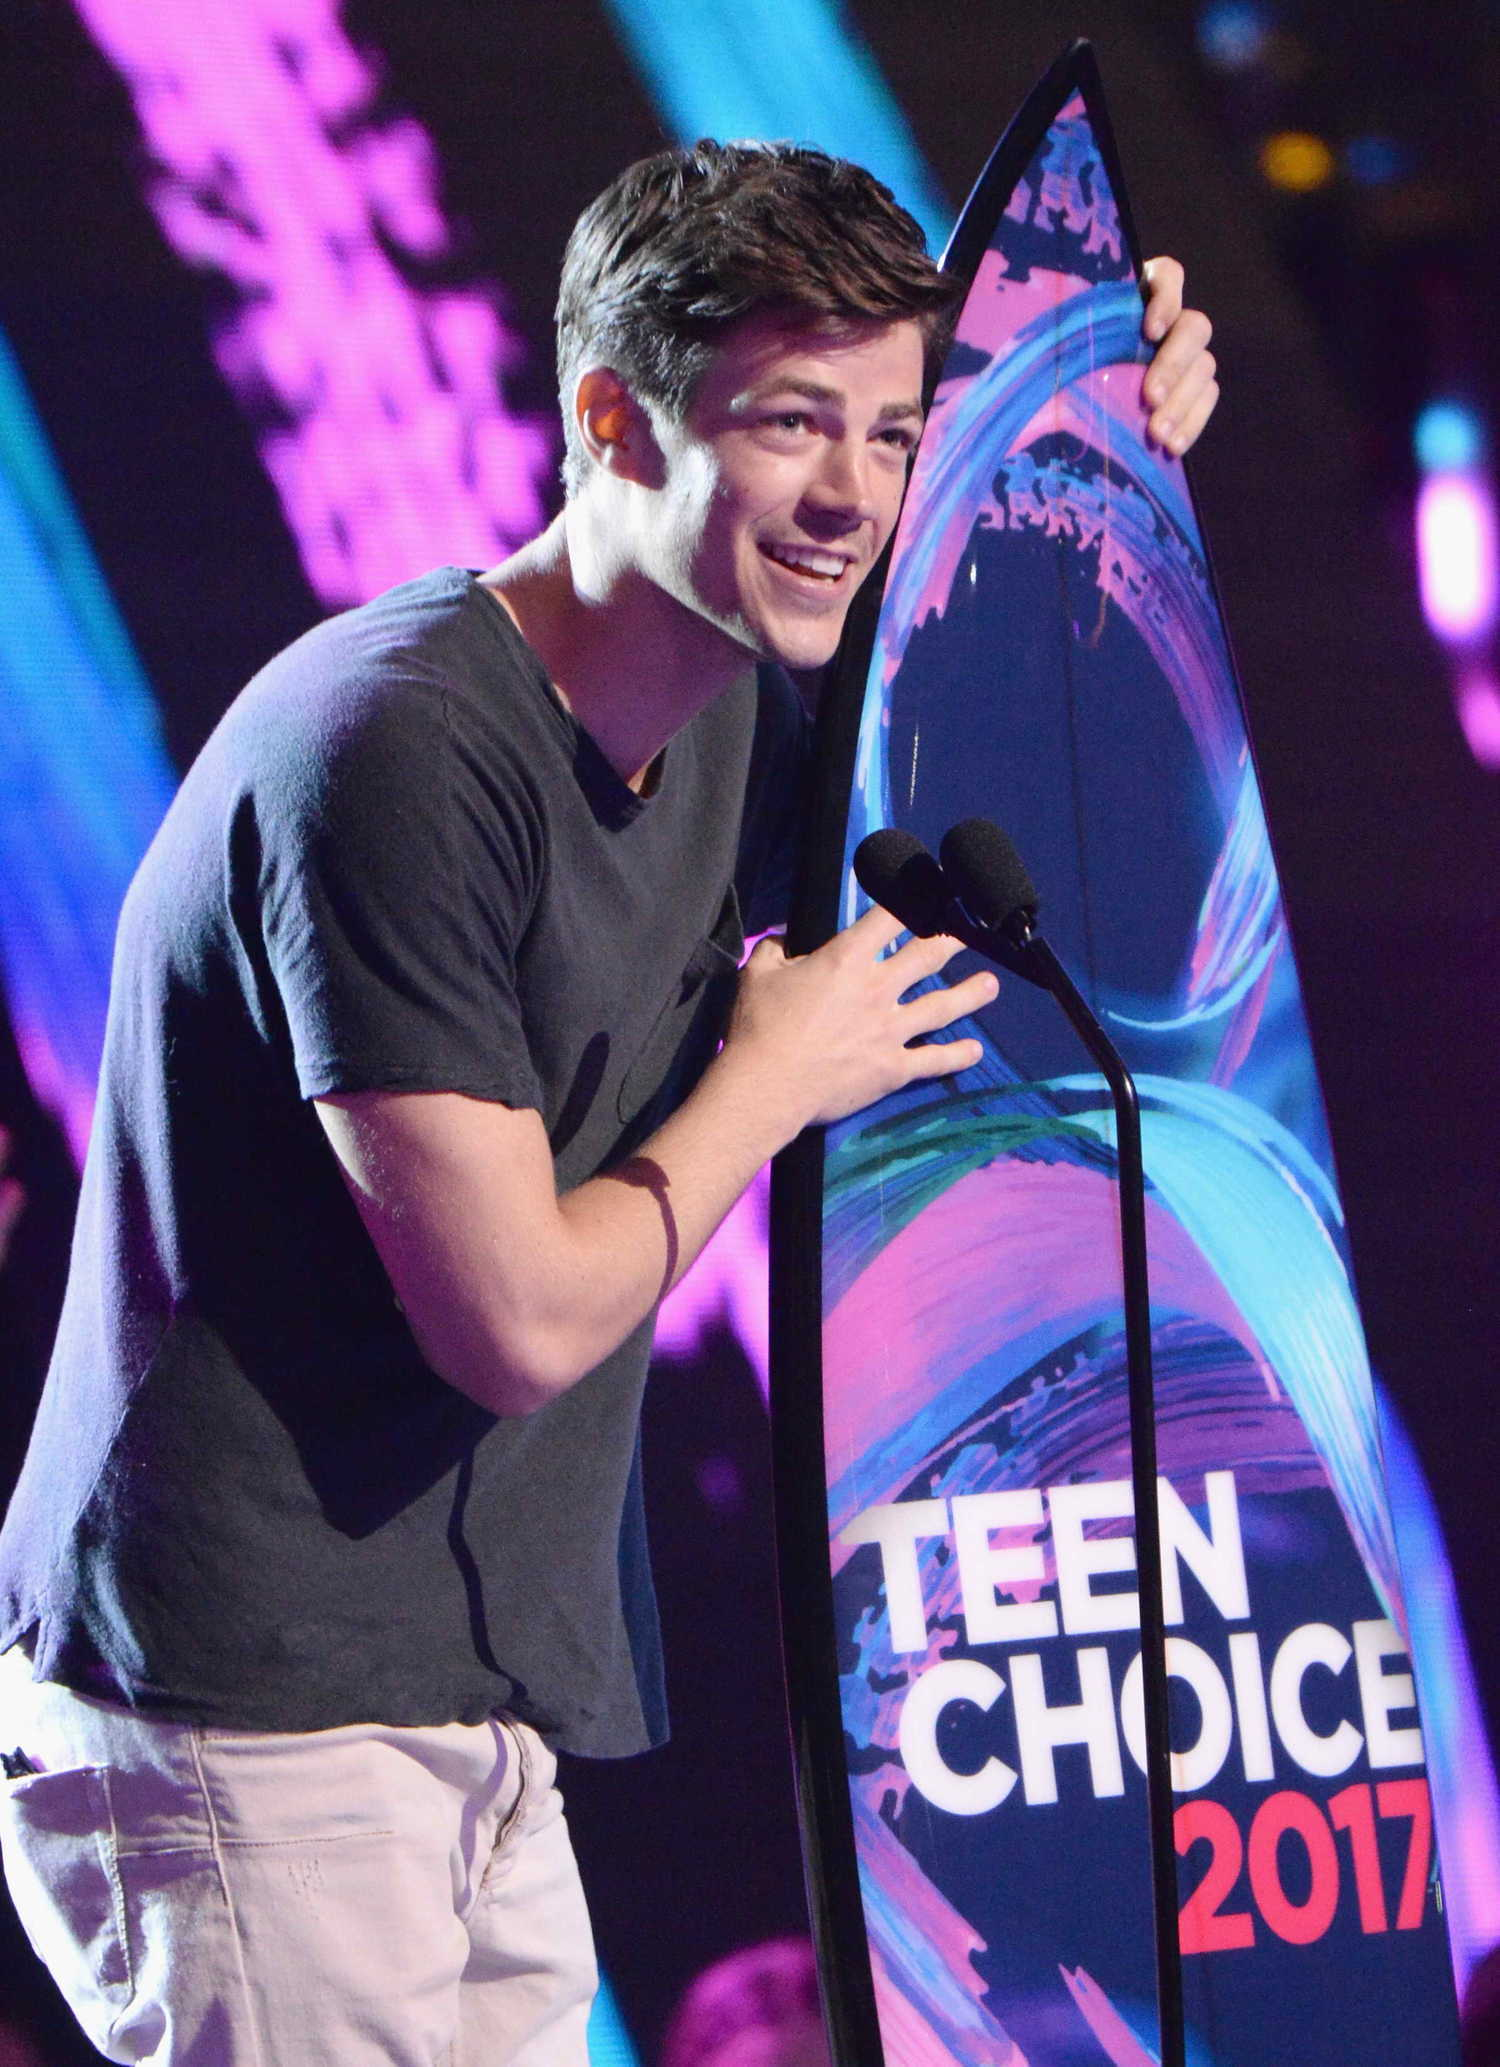 Charming message teen choice awards tv here